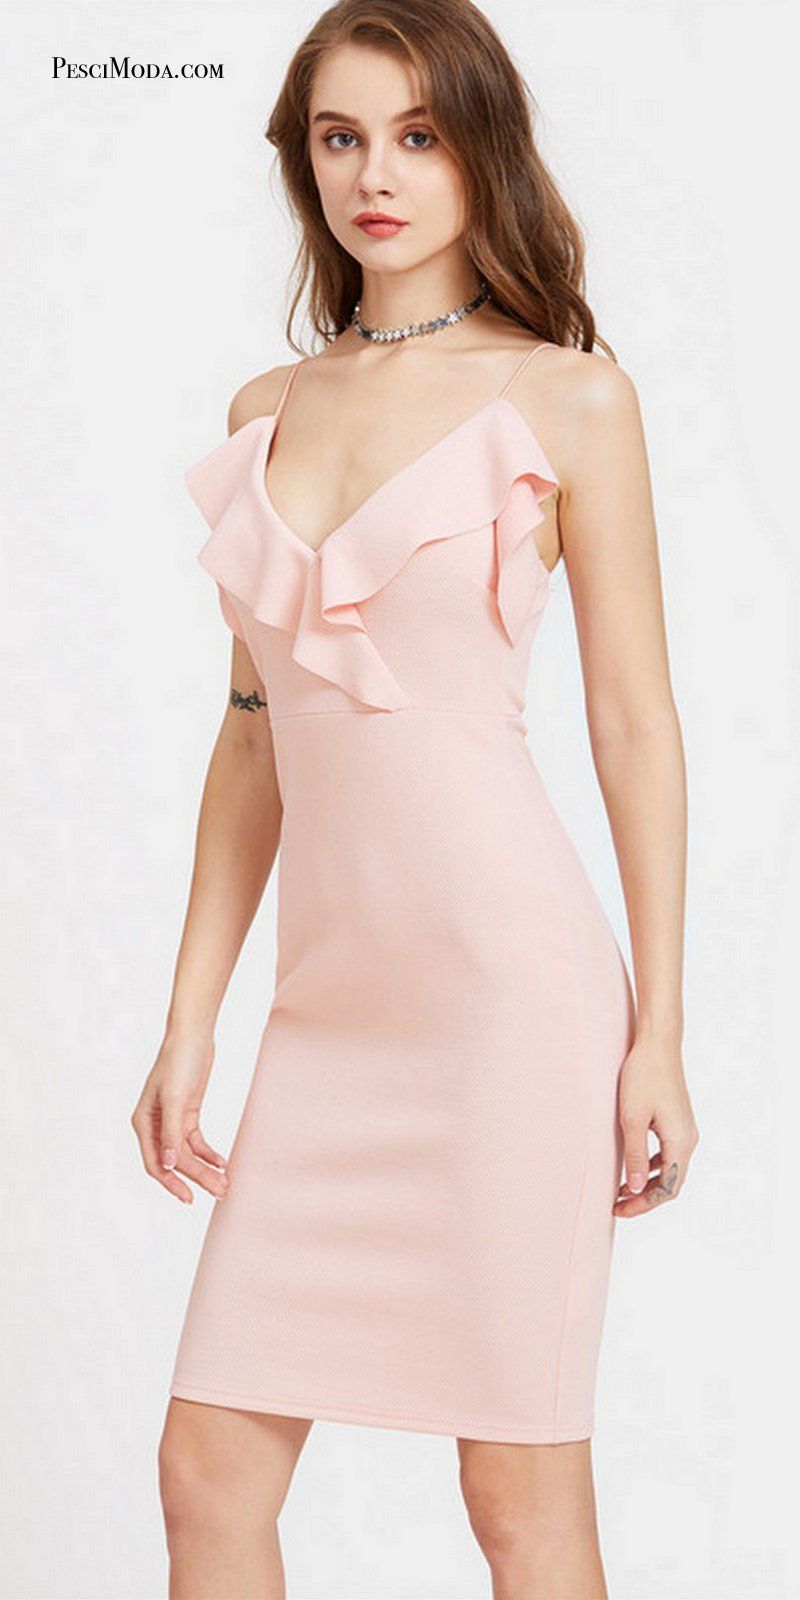 8b7136a68e638 Cute Pink Summer Hot Party Wear Dresses With #FreeShipping. Shop ...